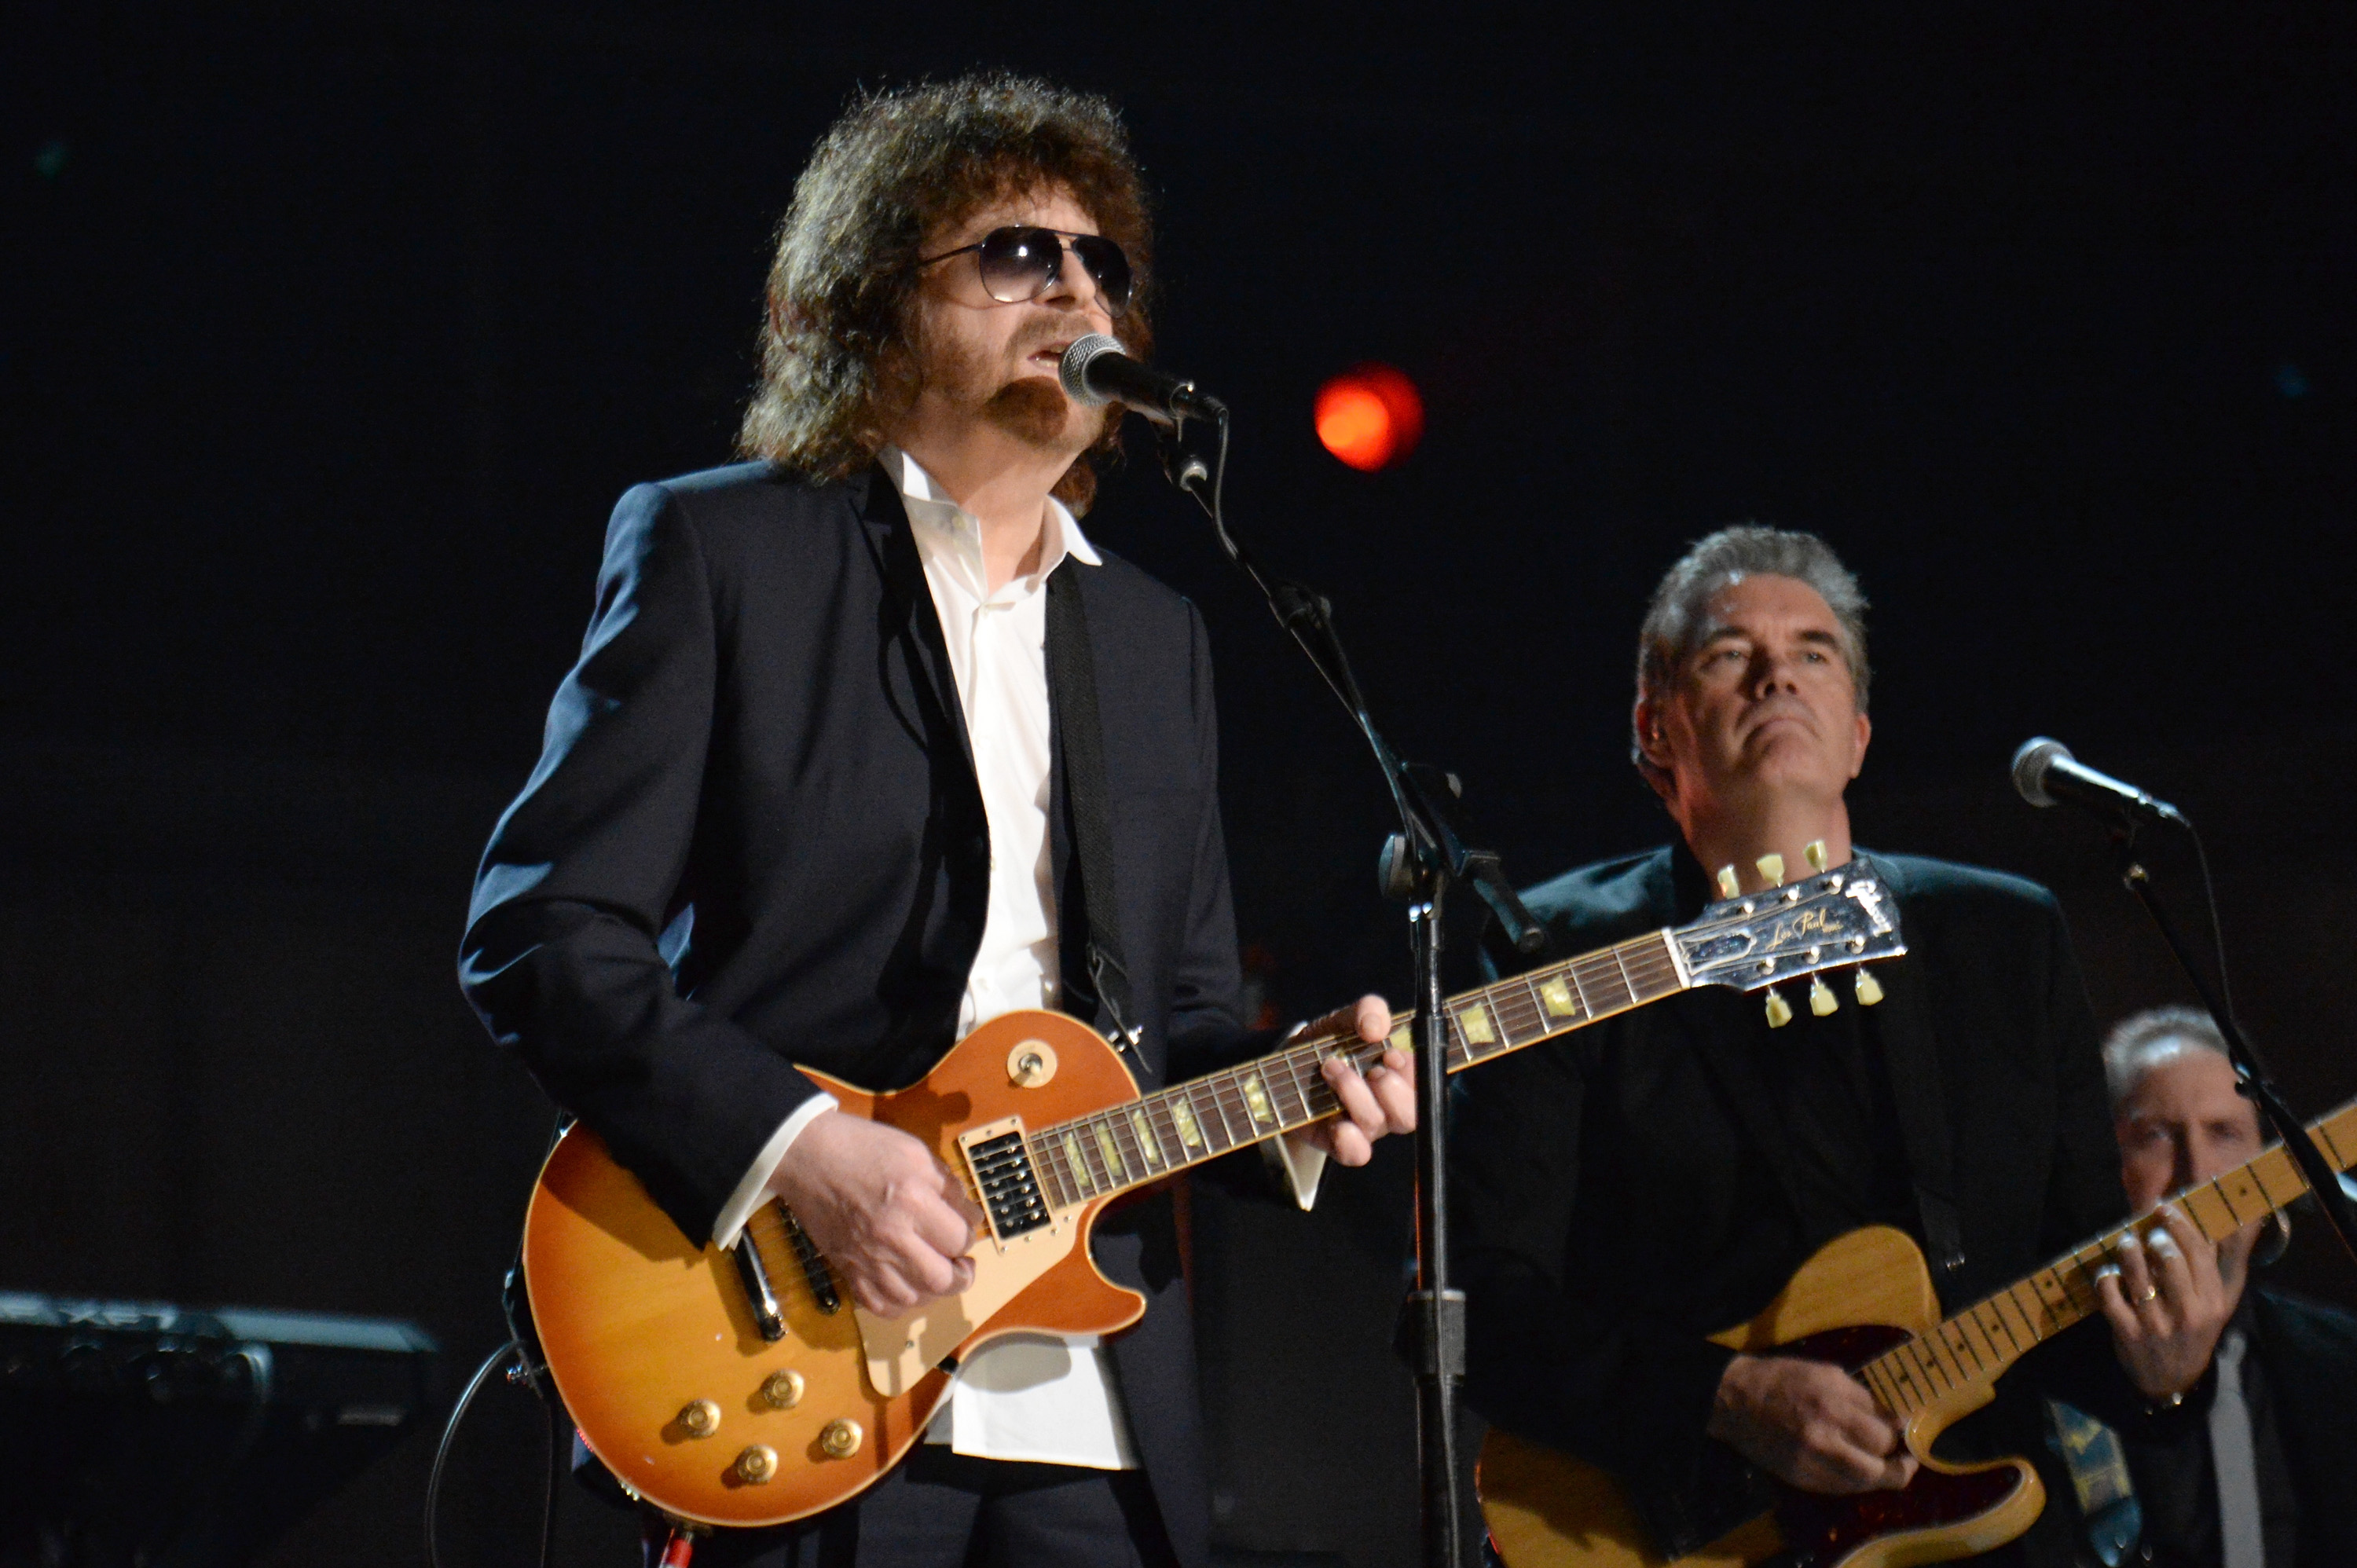 Jeff Lynne's ELO are playing the Legends slot at Glastonbury 2016